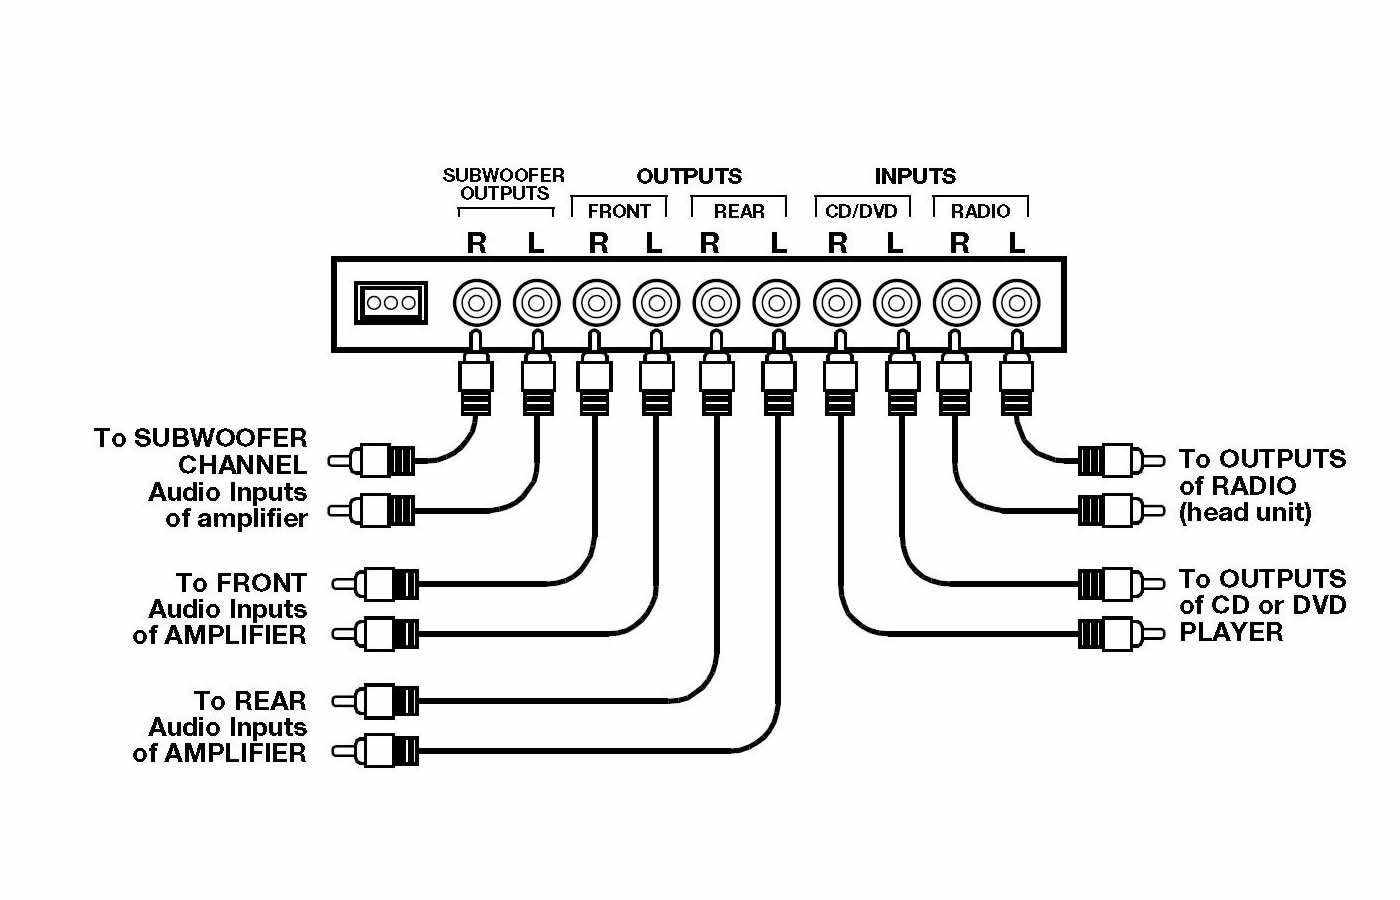 Boss Marine Stereo Wiring Diagram Diagrams Eq Sony Dsx Ms60 Wire Harness Boat Installation Plow